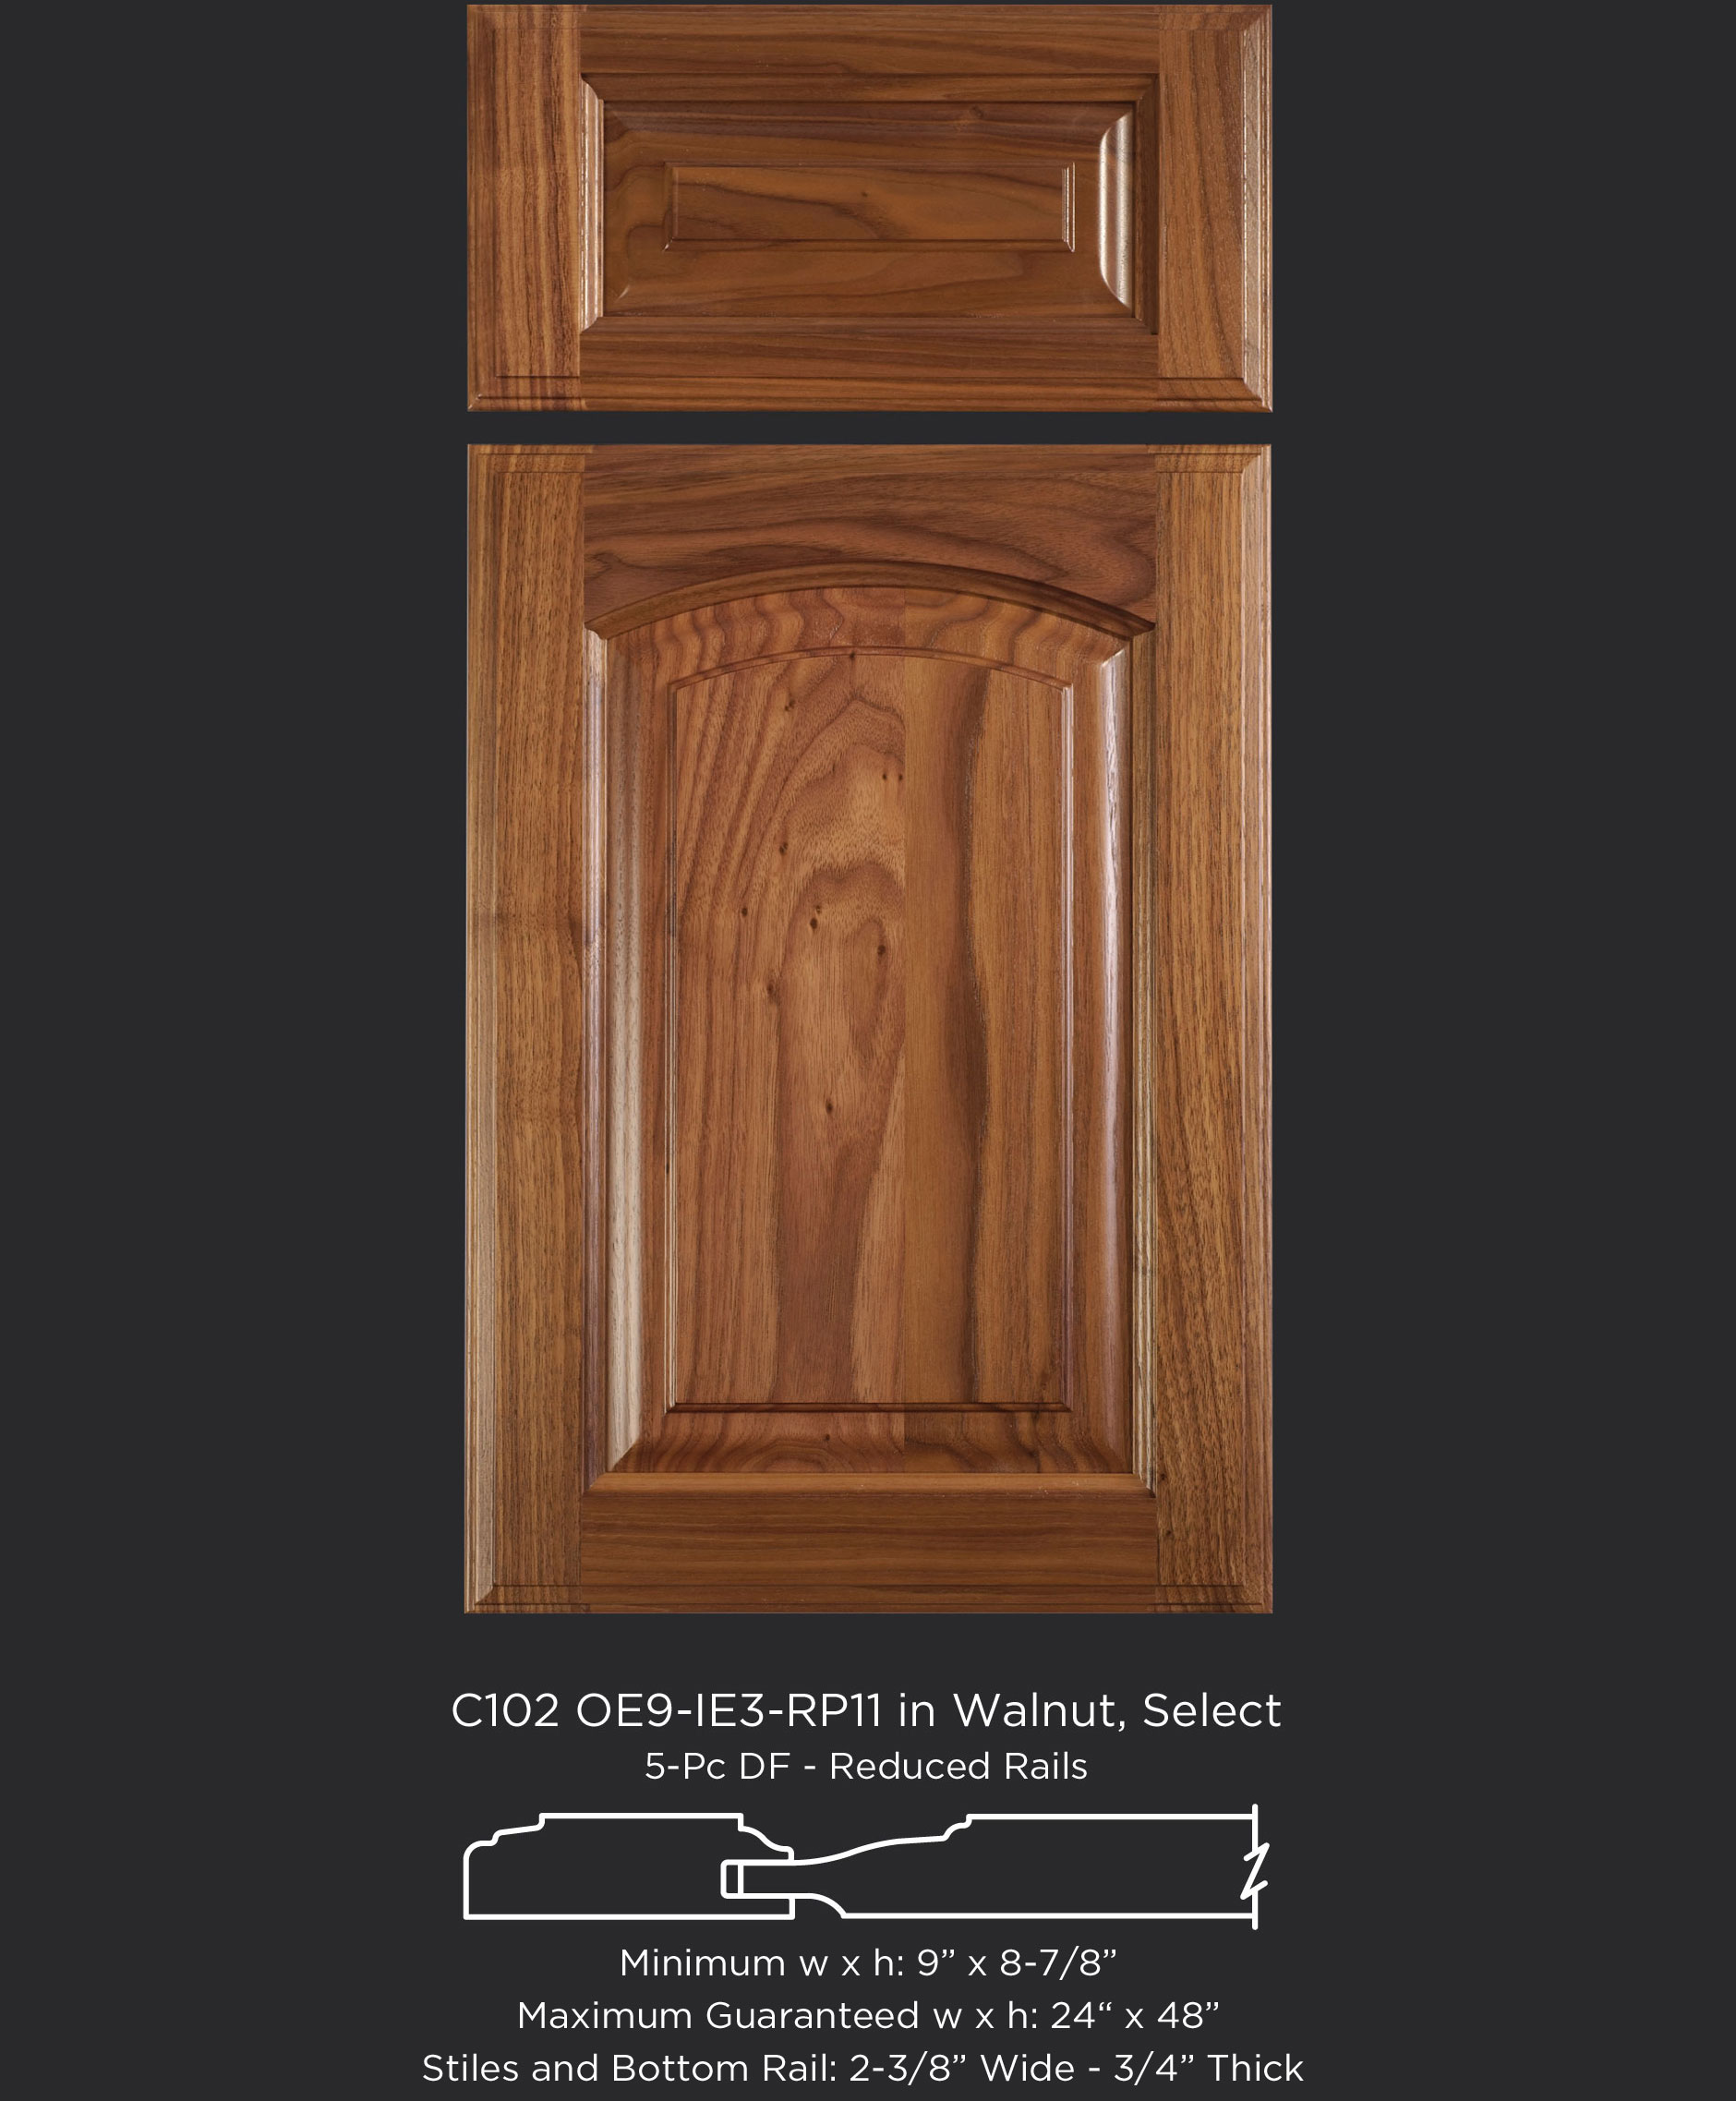 Cope and Stick Cabinet Door C102-OE9-IE3-RP11 in Walnut, Select and 5pc drawer front with reduced rails